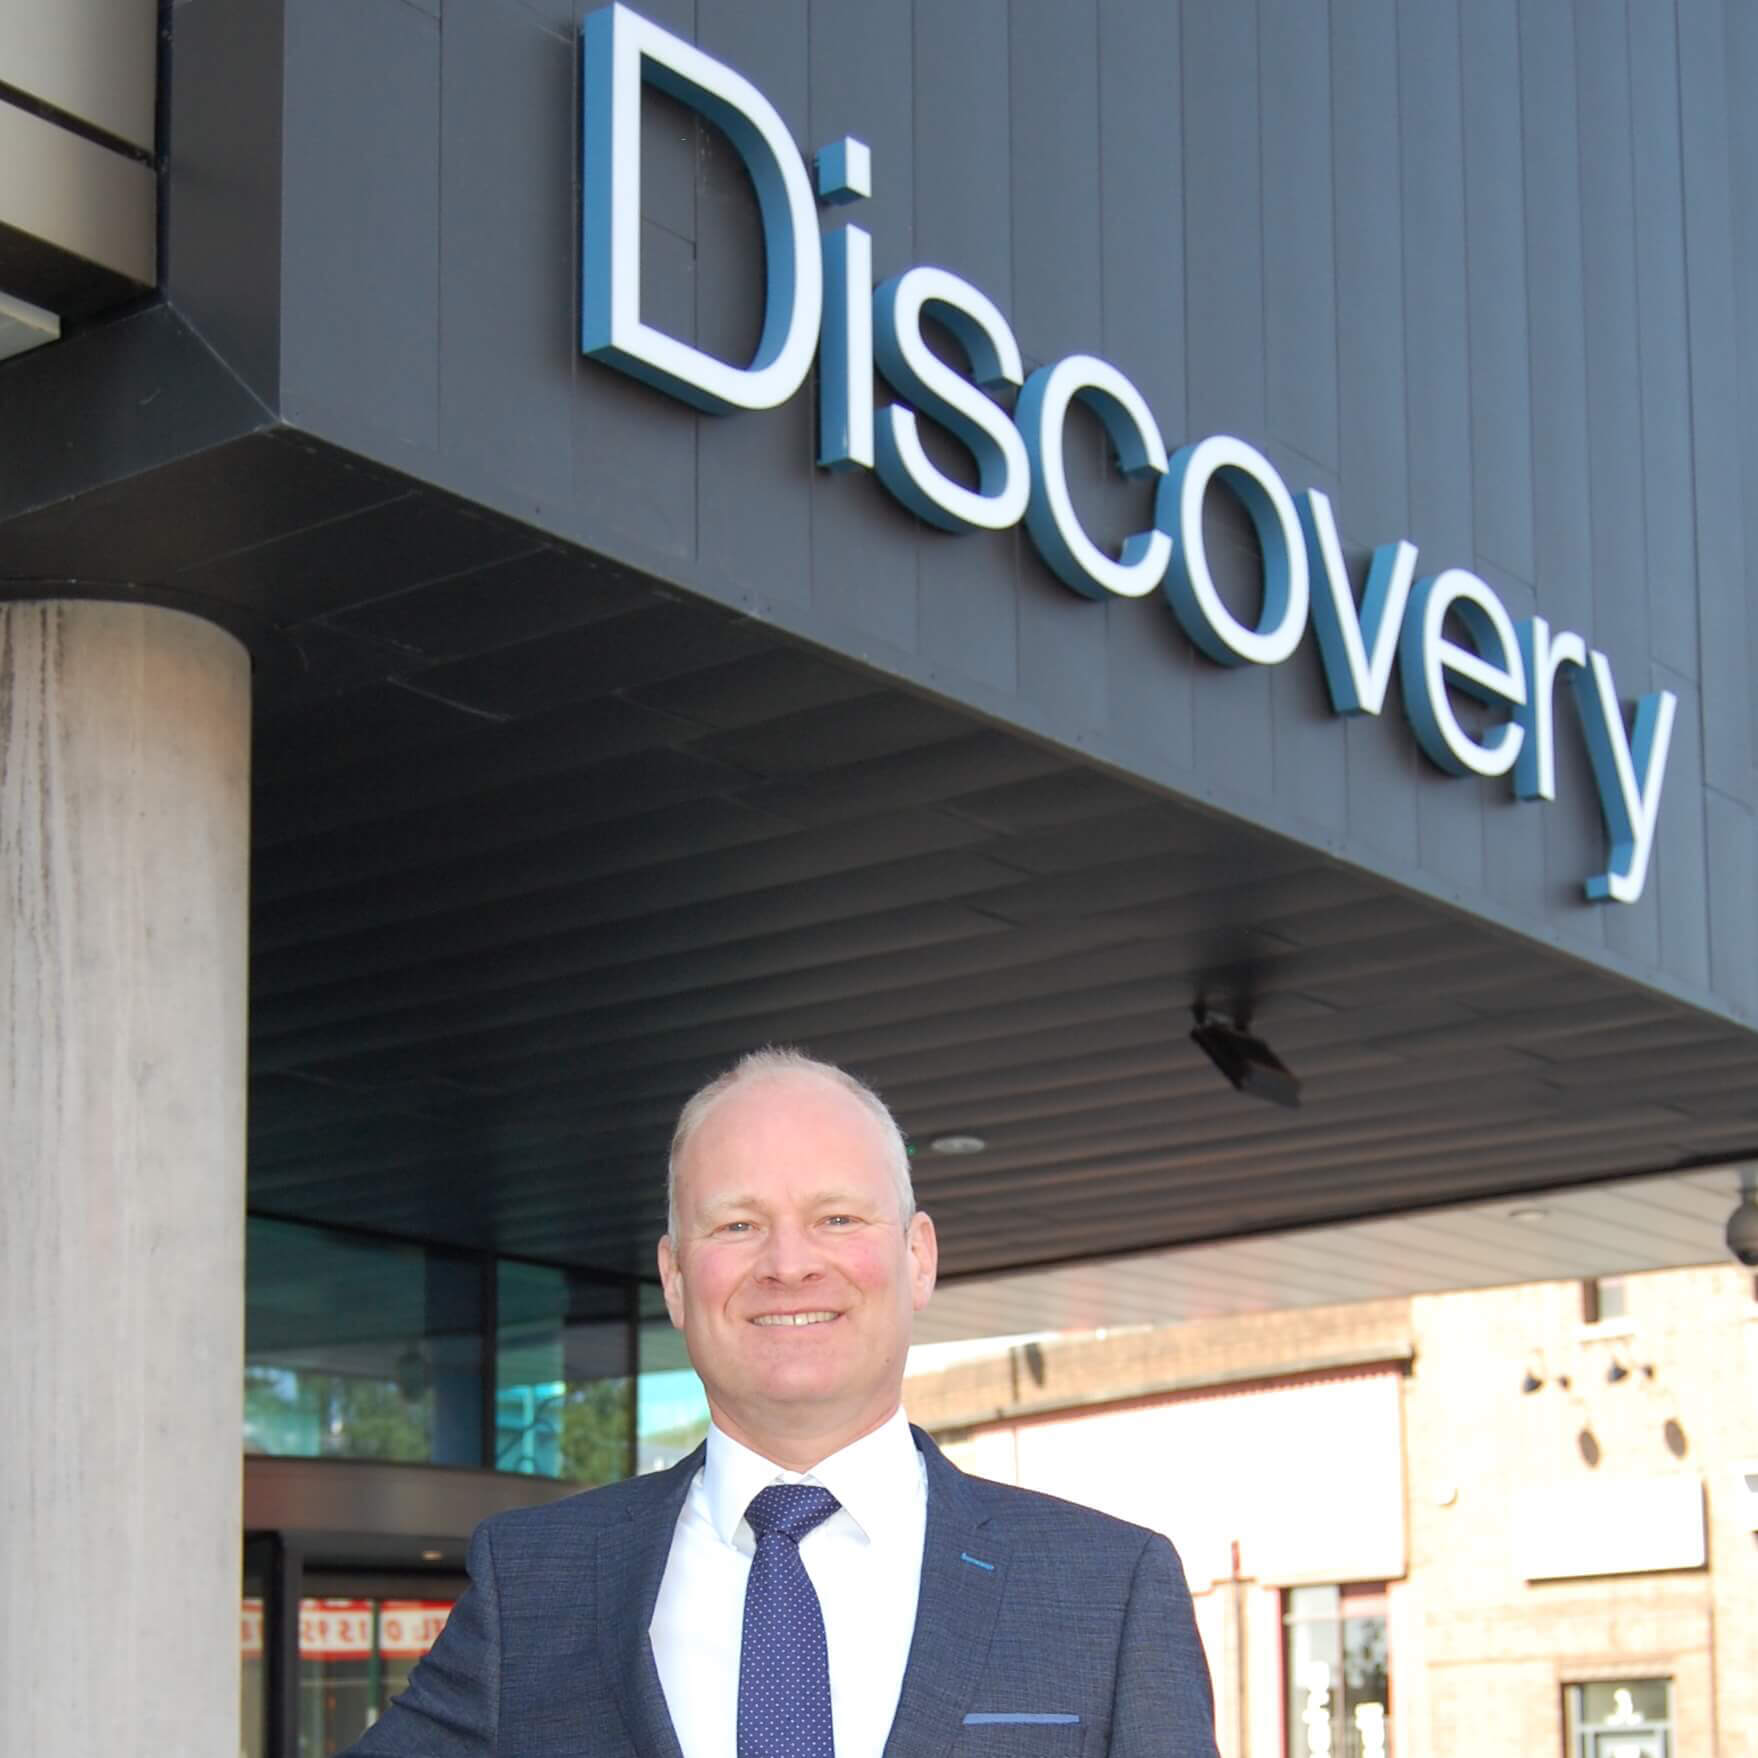 Man smiling in front of a discovery sign